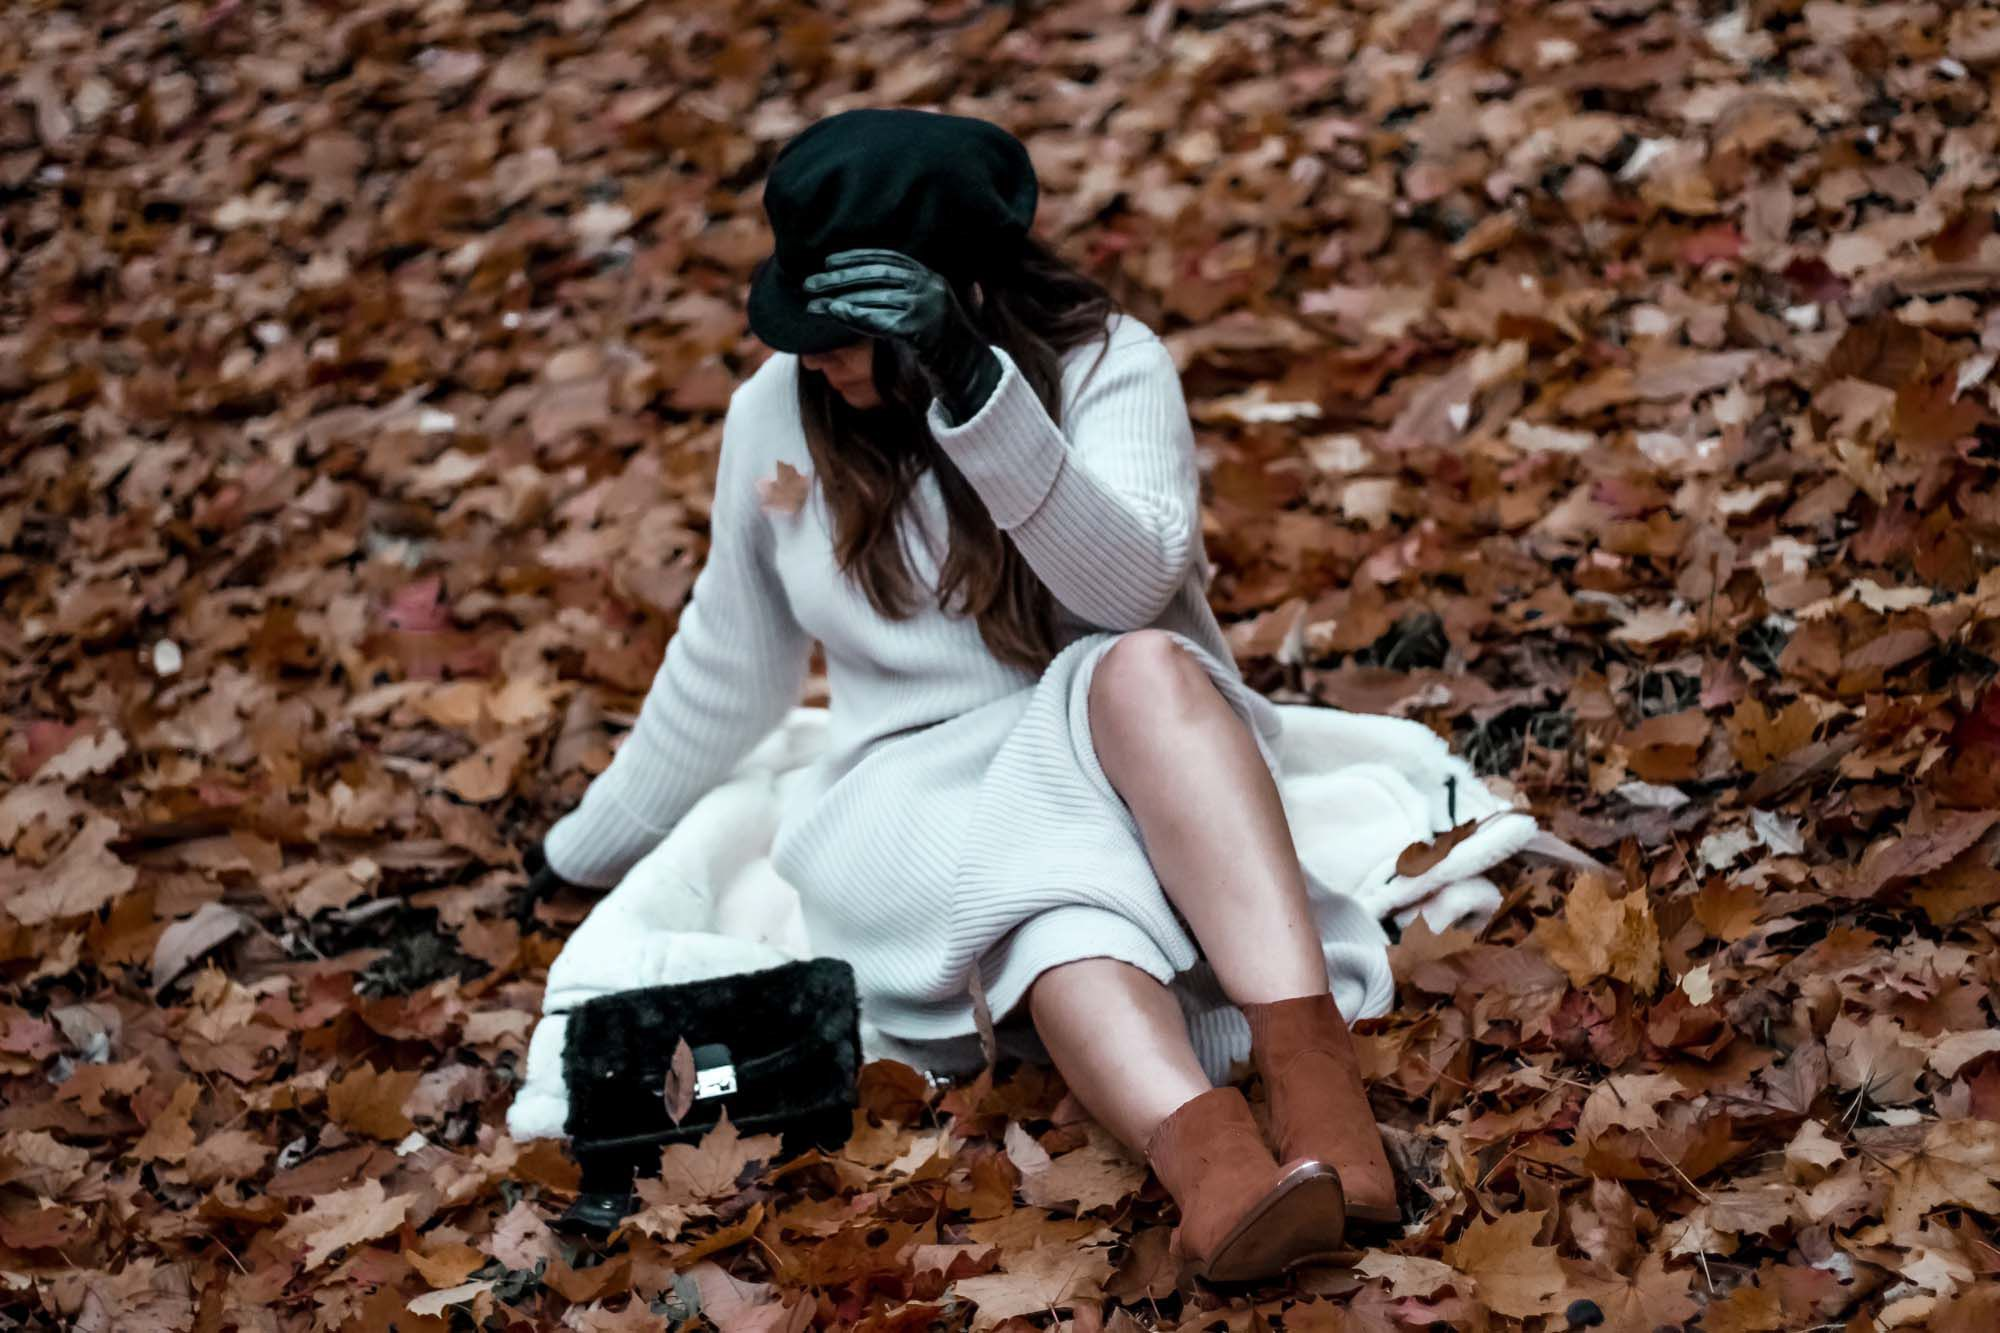 blog mode, the green ananas, fall, automn, feuilles automne, casquette marin, asos, pinterest, blogueuse mode, robe laine, robe pull, fall with asos, santiags, stradivarius, bershka